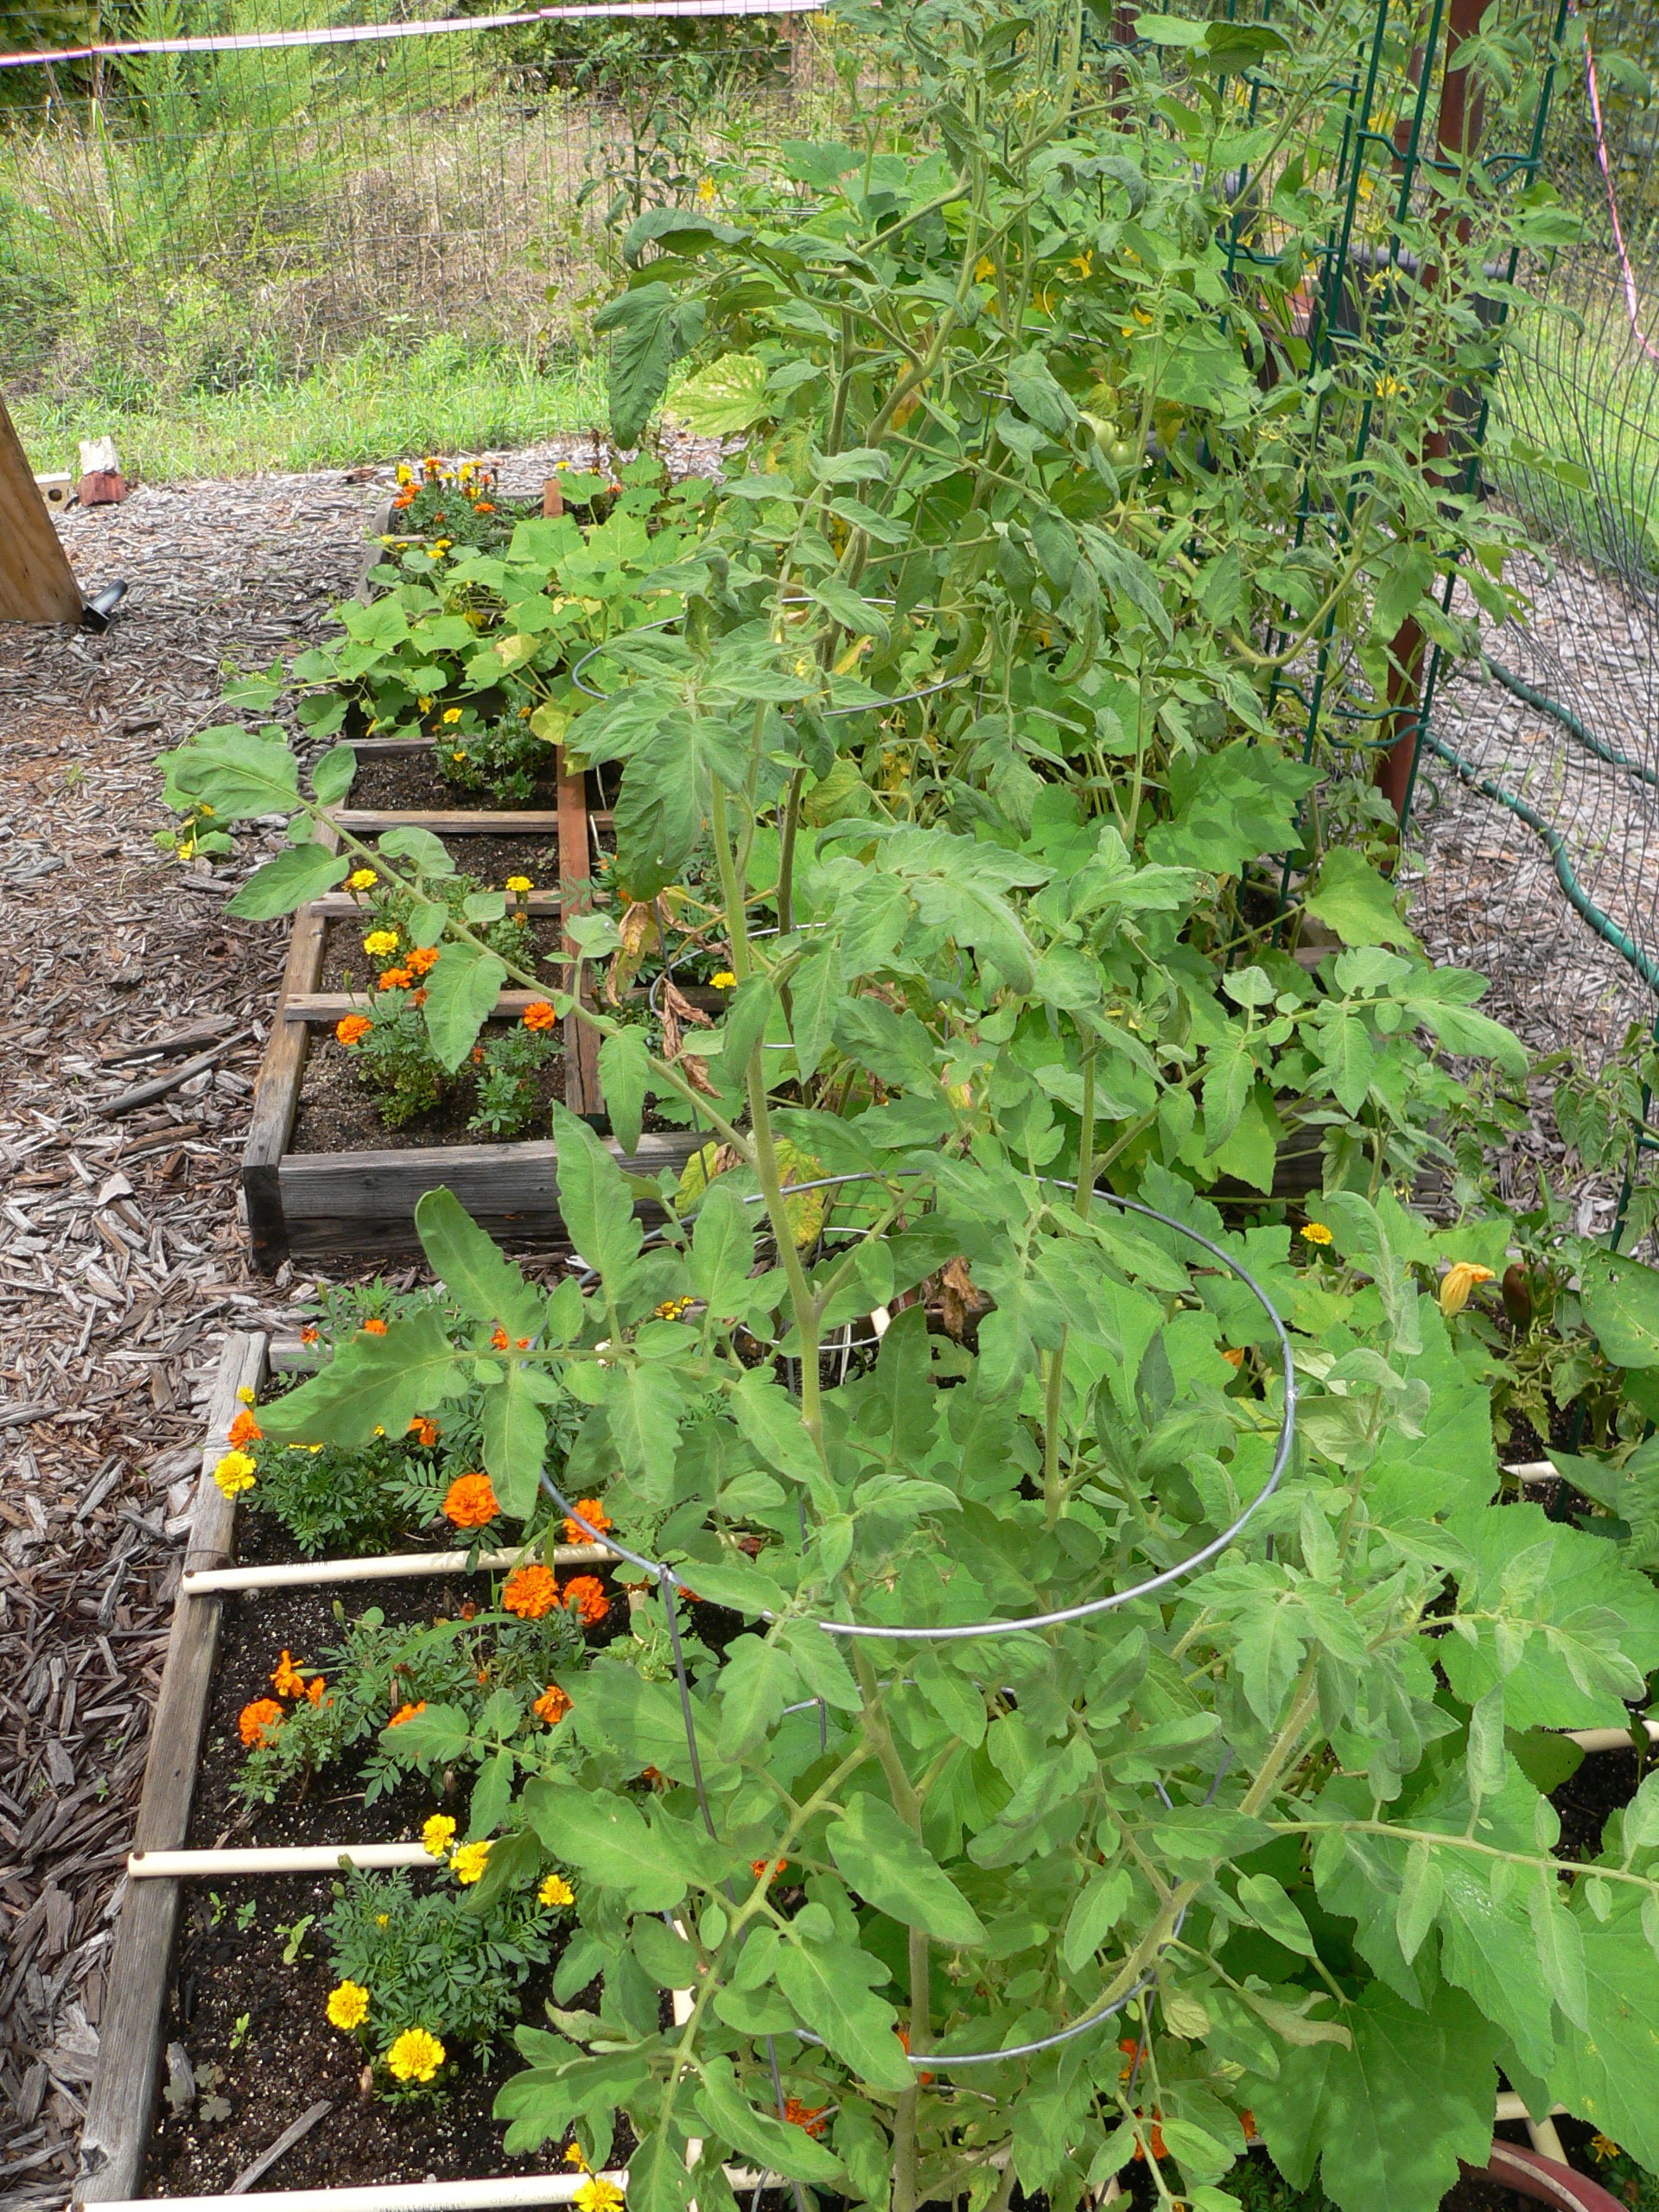 This Is The North Side Of The Garden With The Regular Square Foot Garden  Squares. Iu0027m Growing Tomatoes, Cucumbers, Squash, Bell Peppers, And Some  Melons At ...